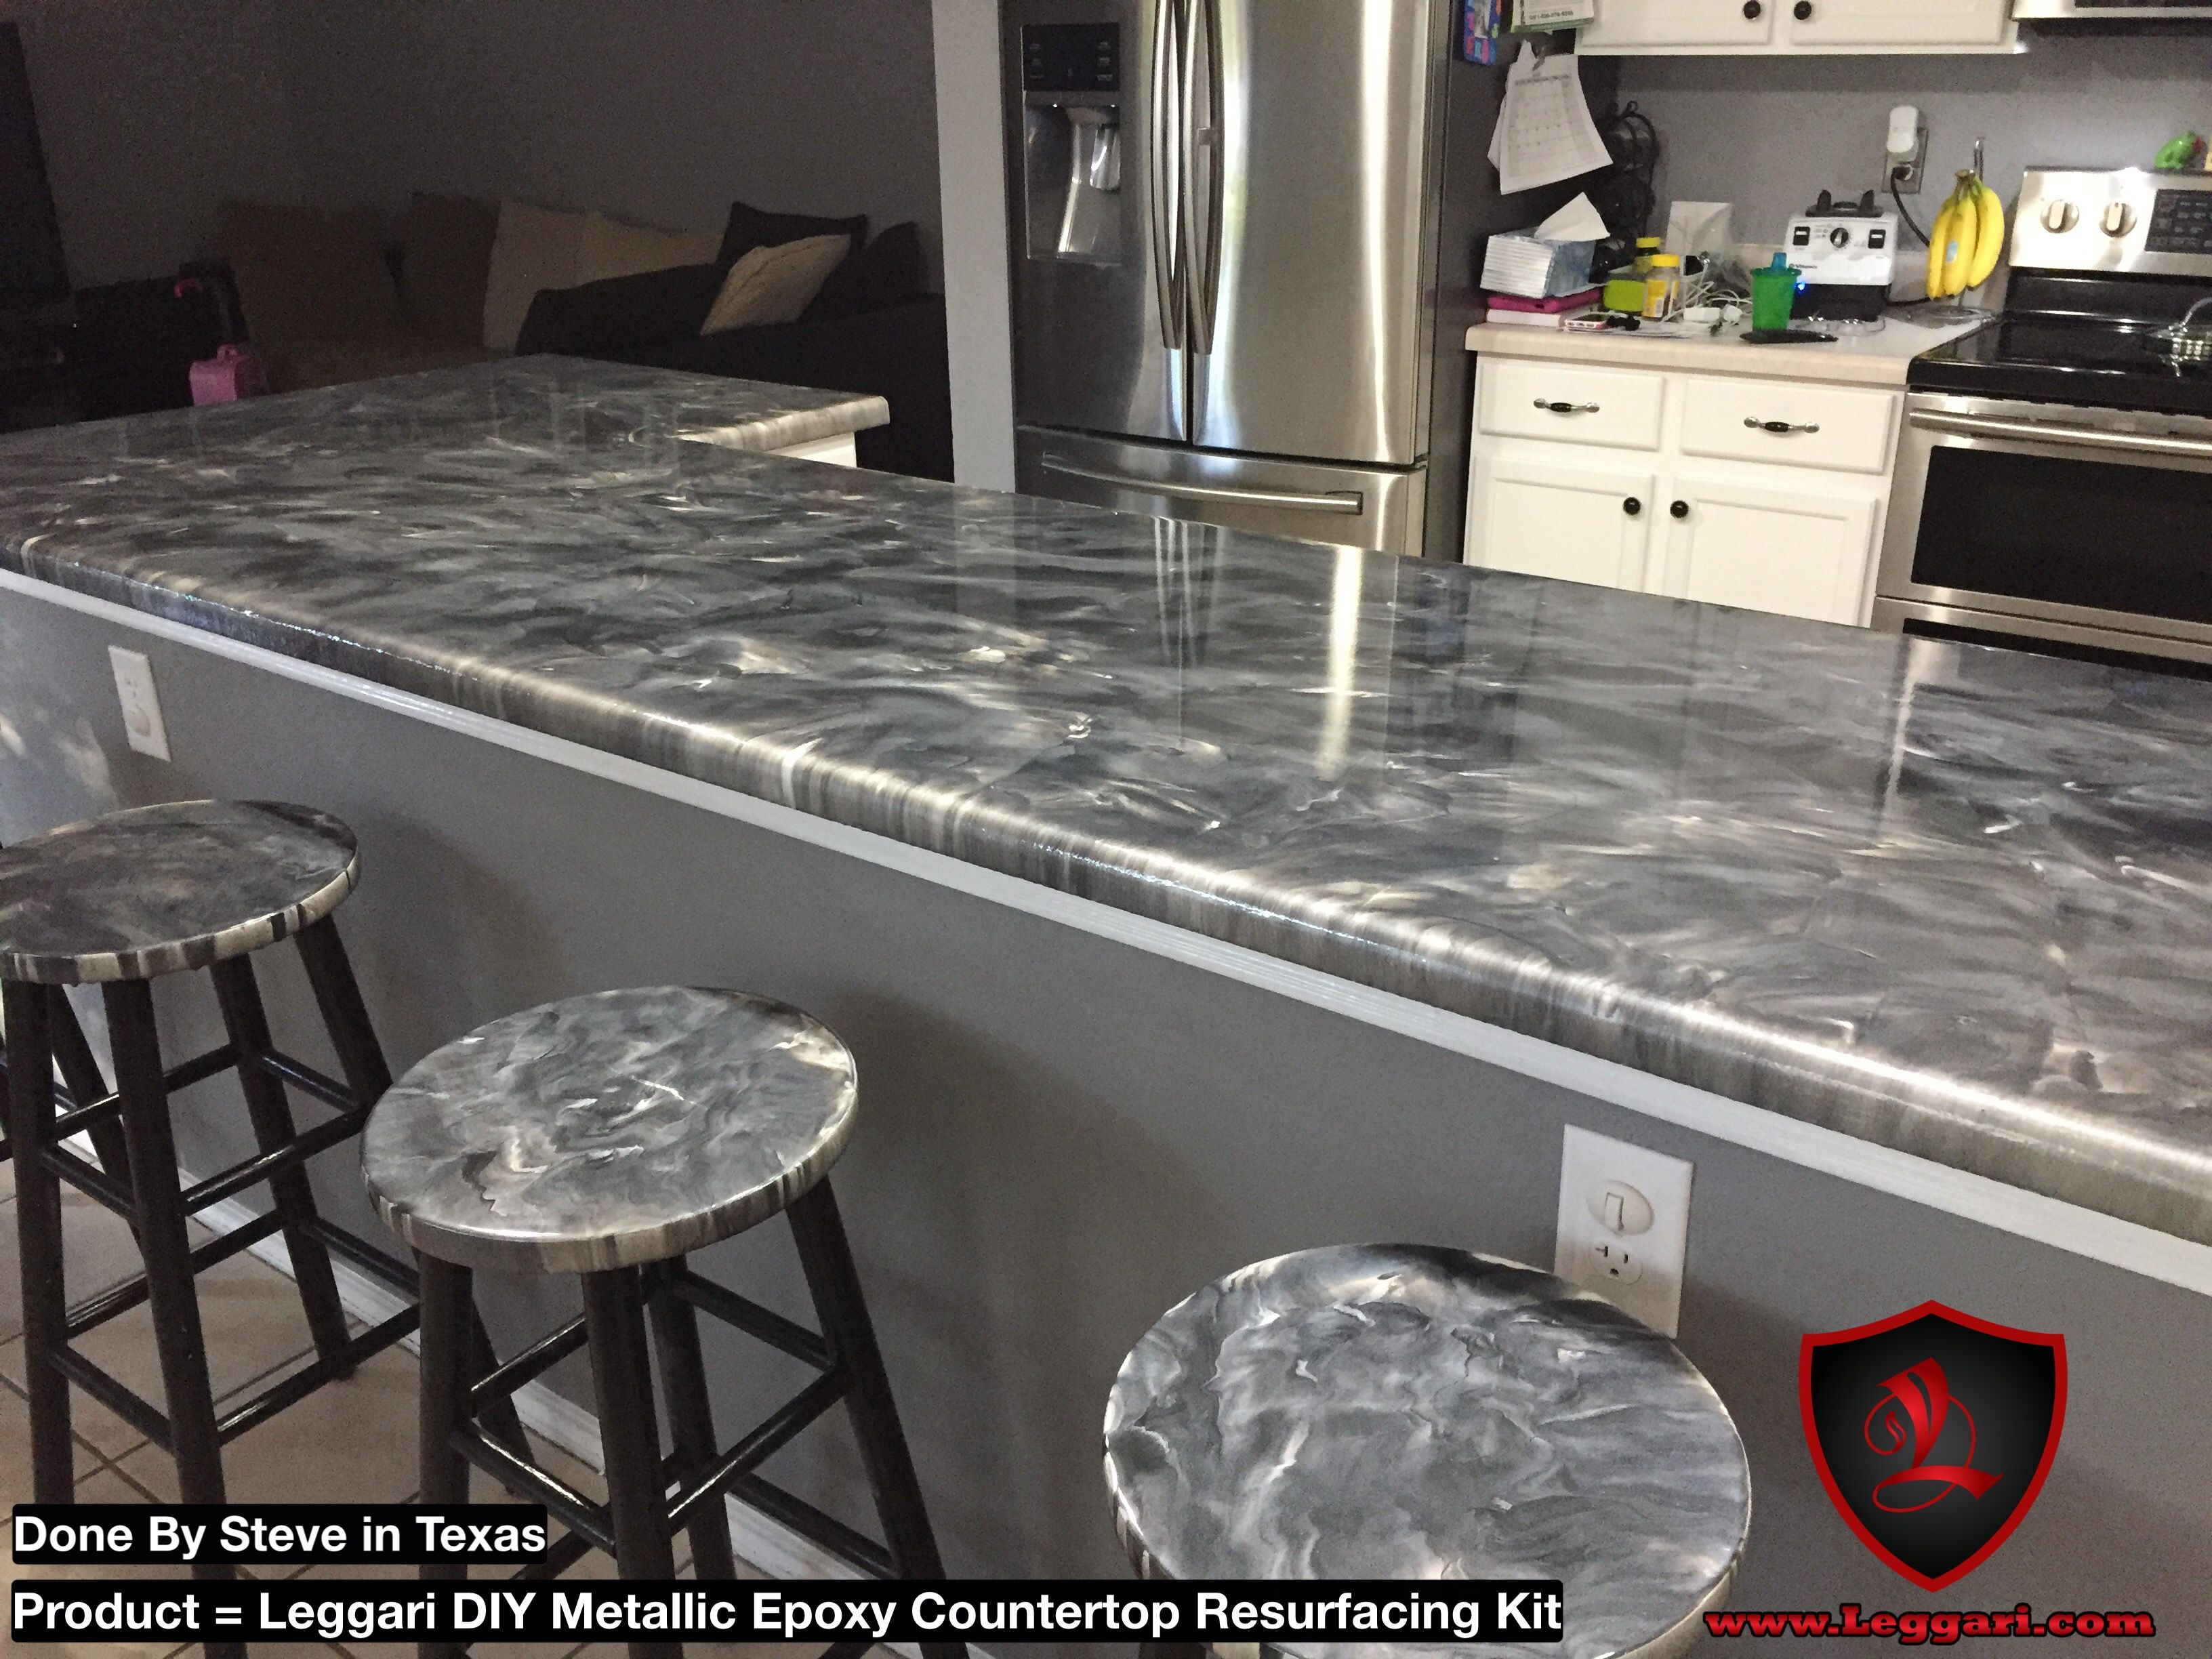 Get your kit today and coat something countertops diy